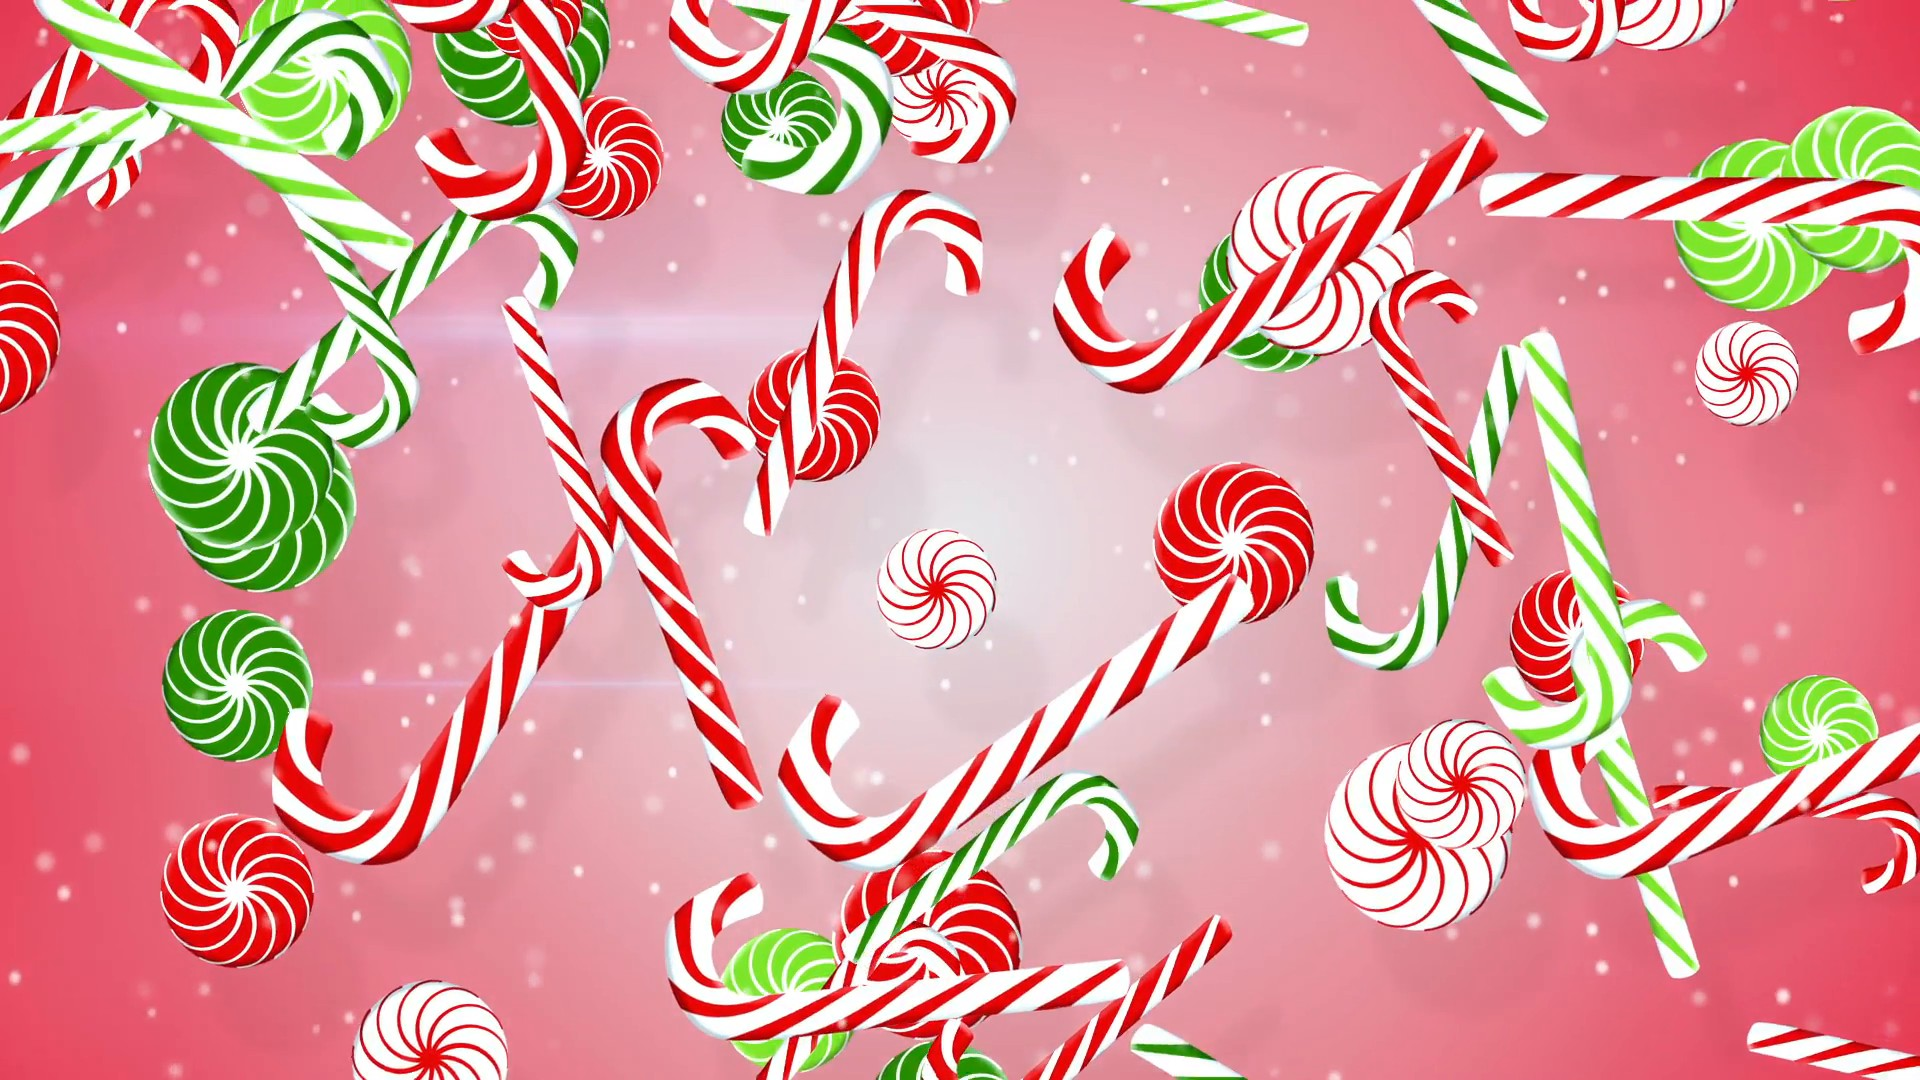 Candy cane background download free cool hd wallpapers - Gingerbread iphone wallpaper ...